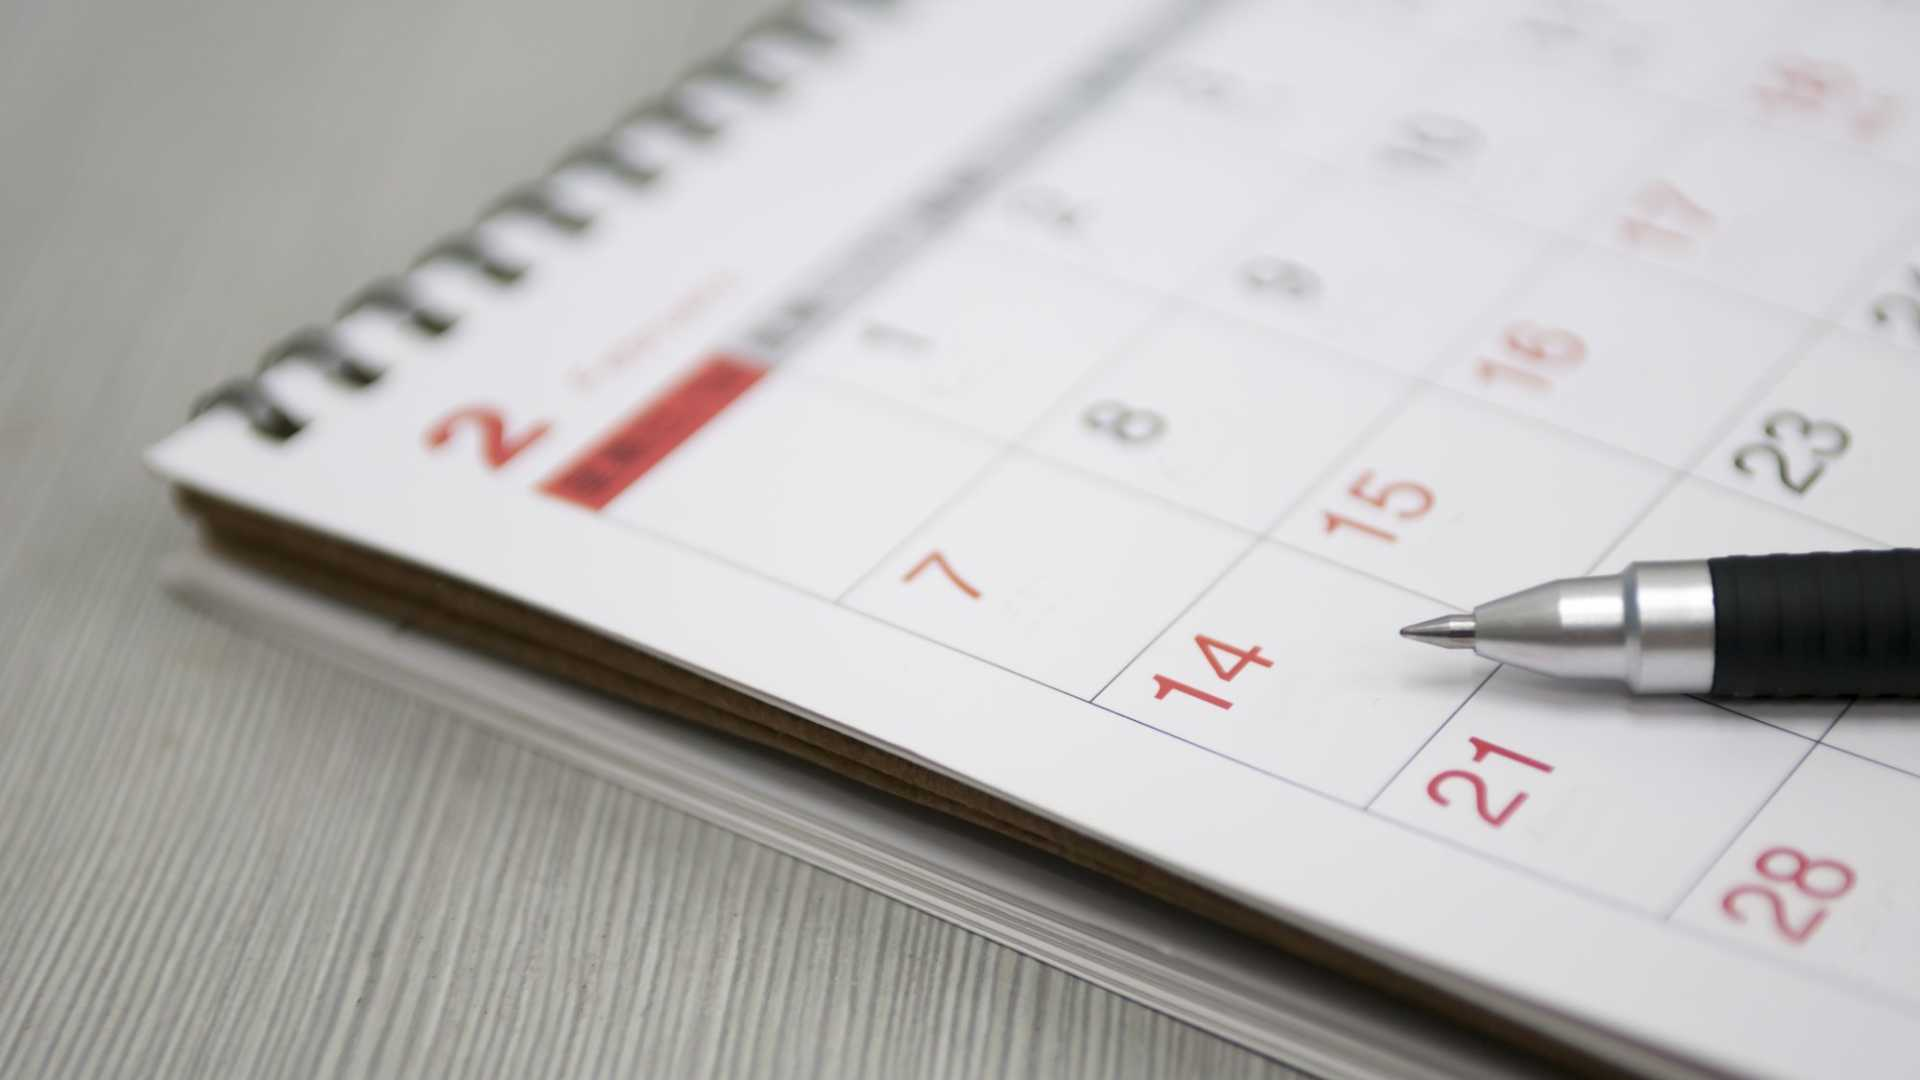 3 Simple Ways to Stop Procrastinating the Work You Don't Want to Do